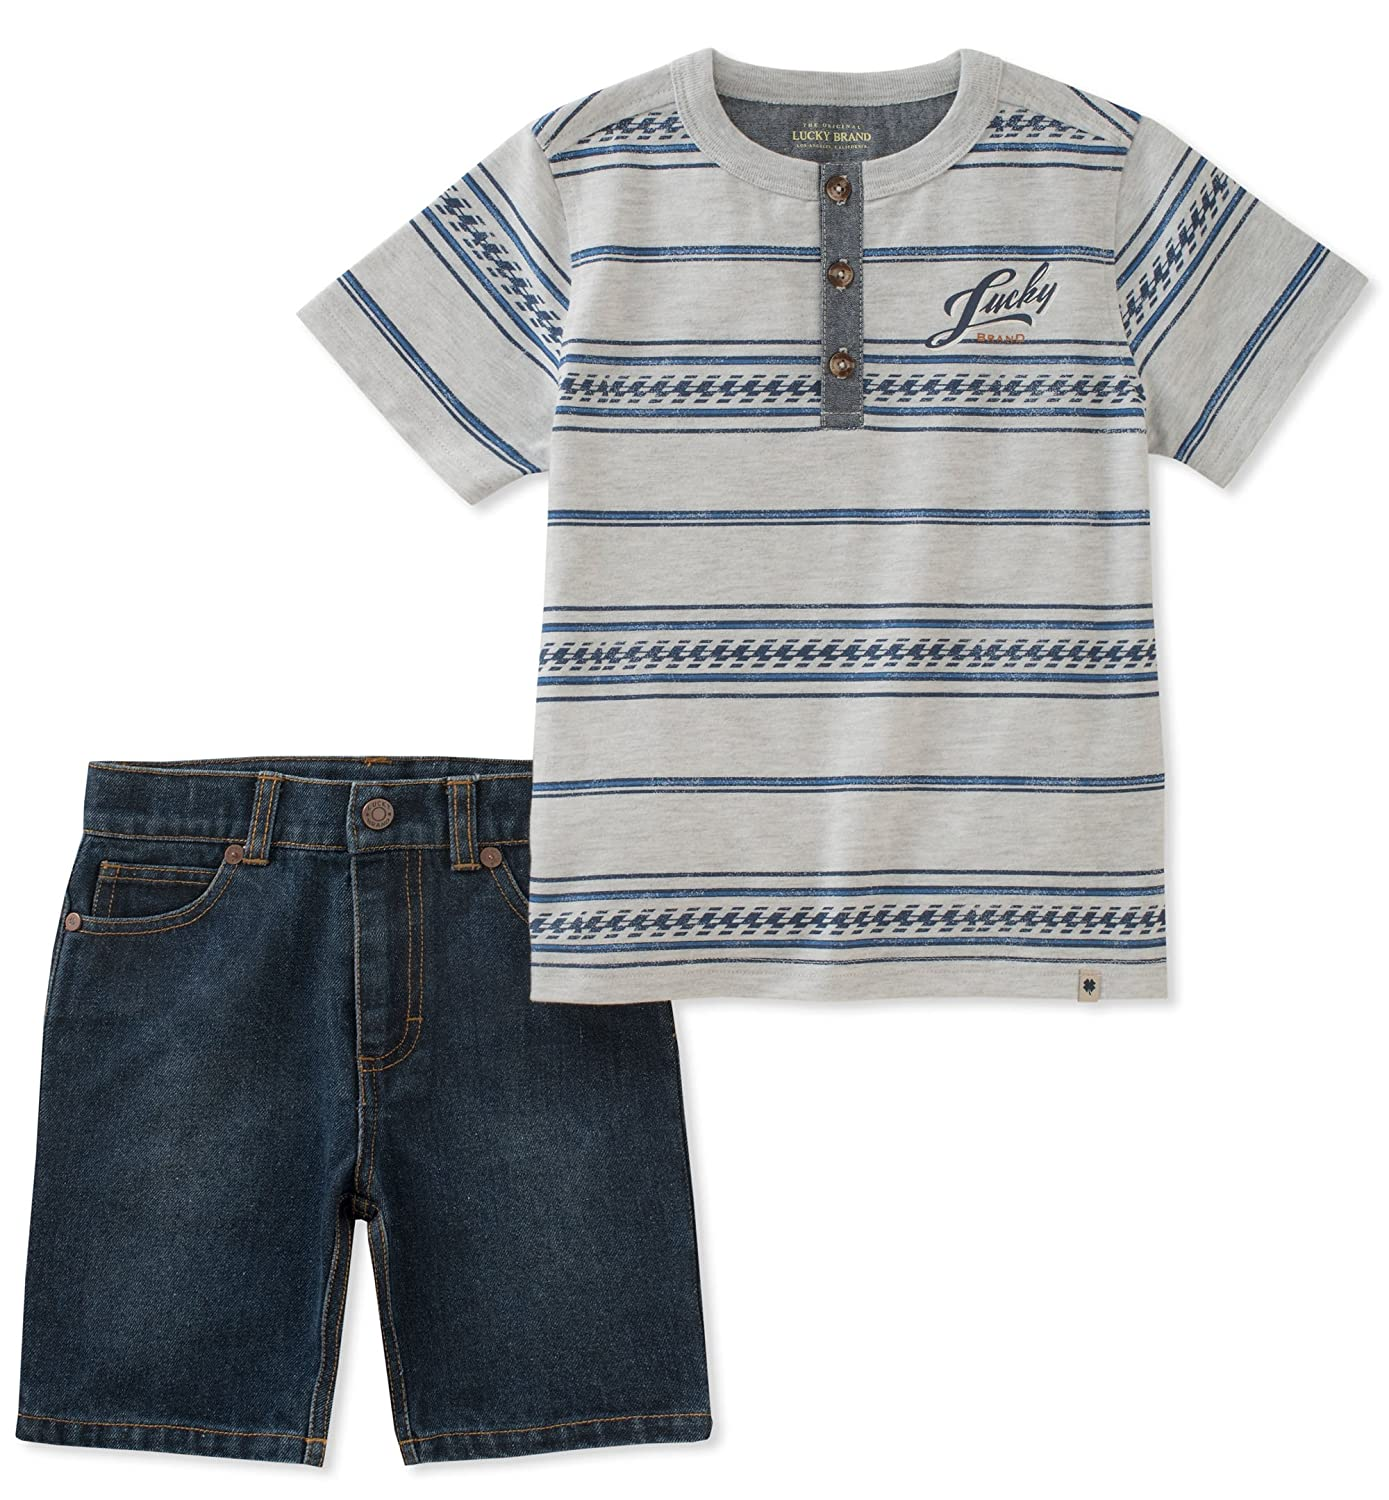 Lucky Brand Boys Shorts Set